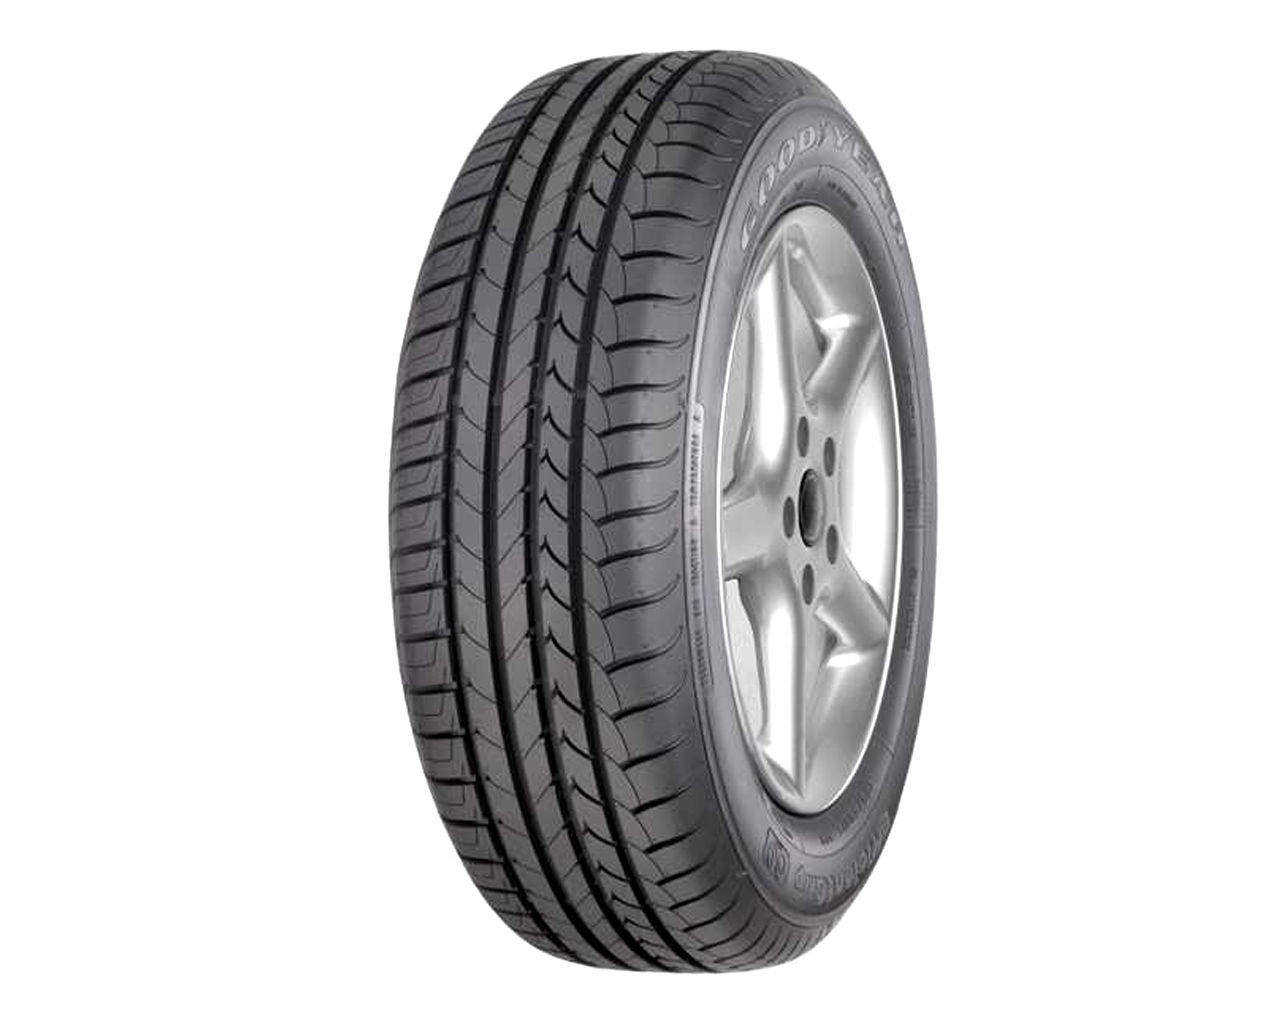 Goodyear EFFICIENTGRIP 255/45 R18 99Y AO